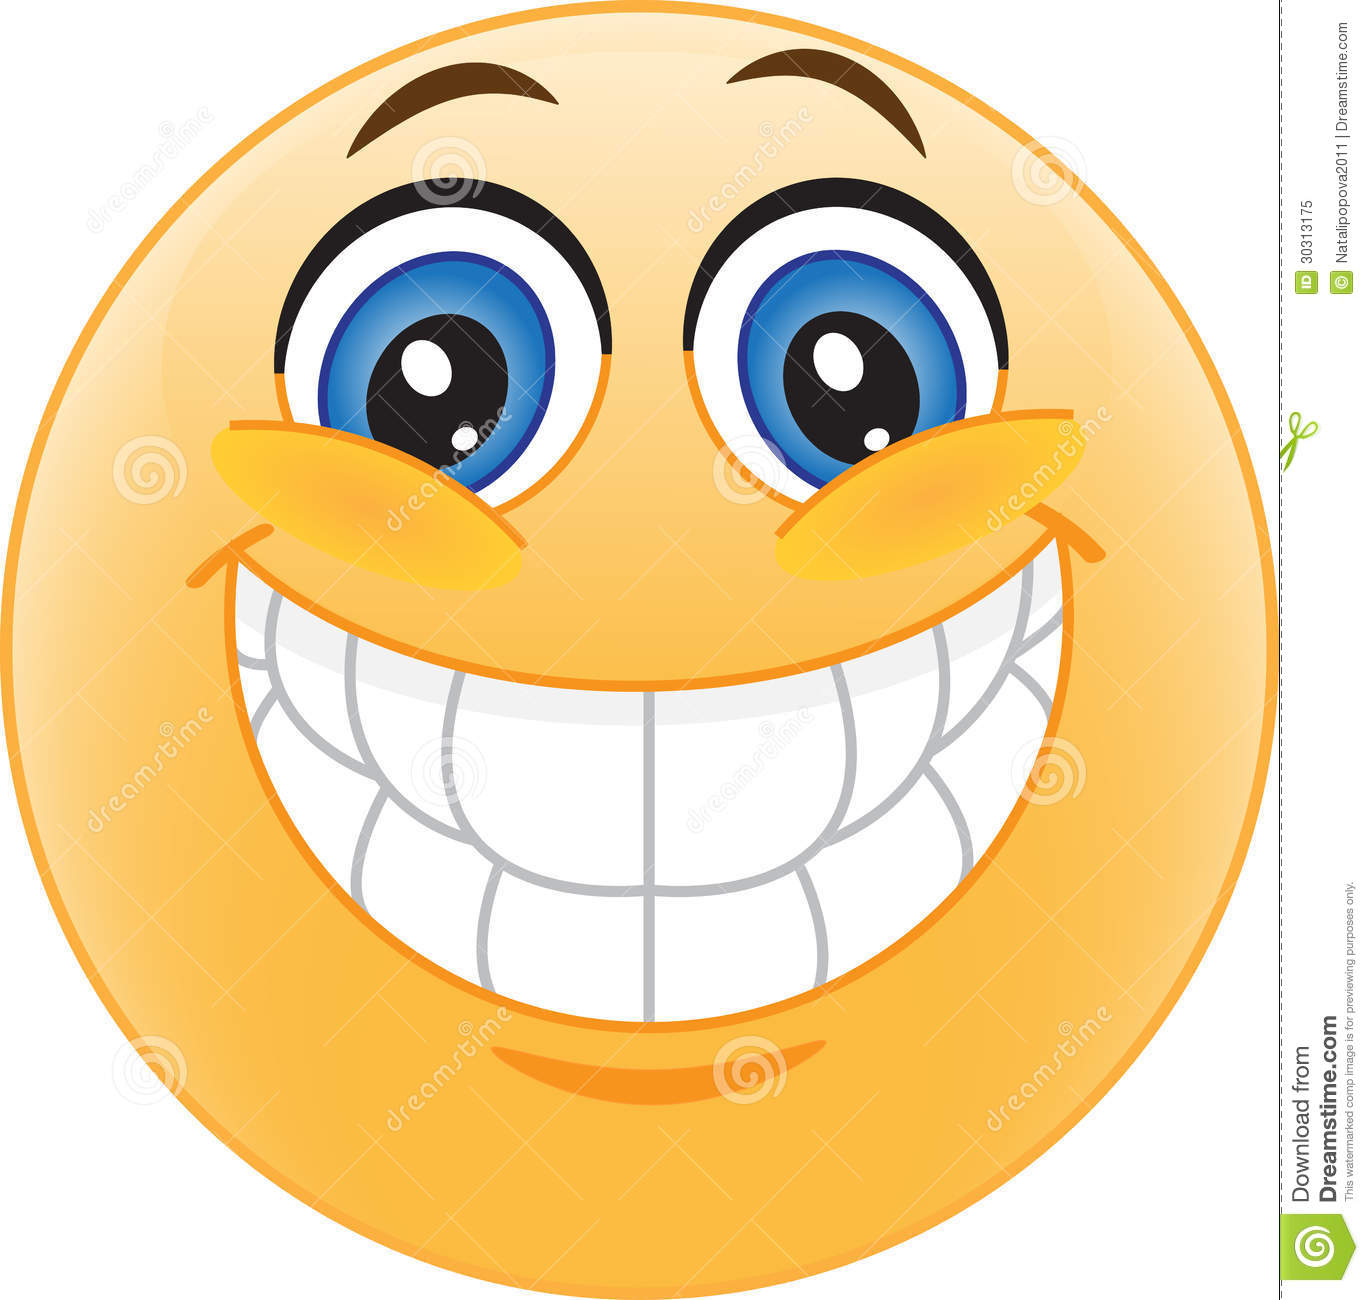 Royalty Free Stock Photo Stock Image Smile Smile Joy Image30313175 on Cartoon Smiley Mouth